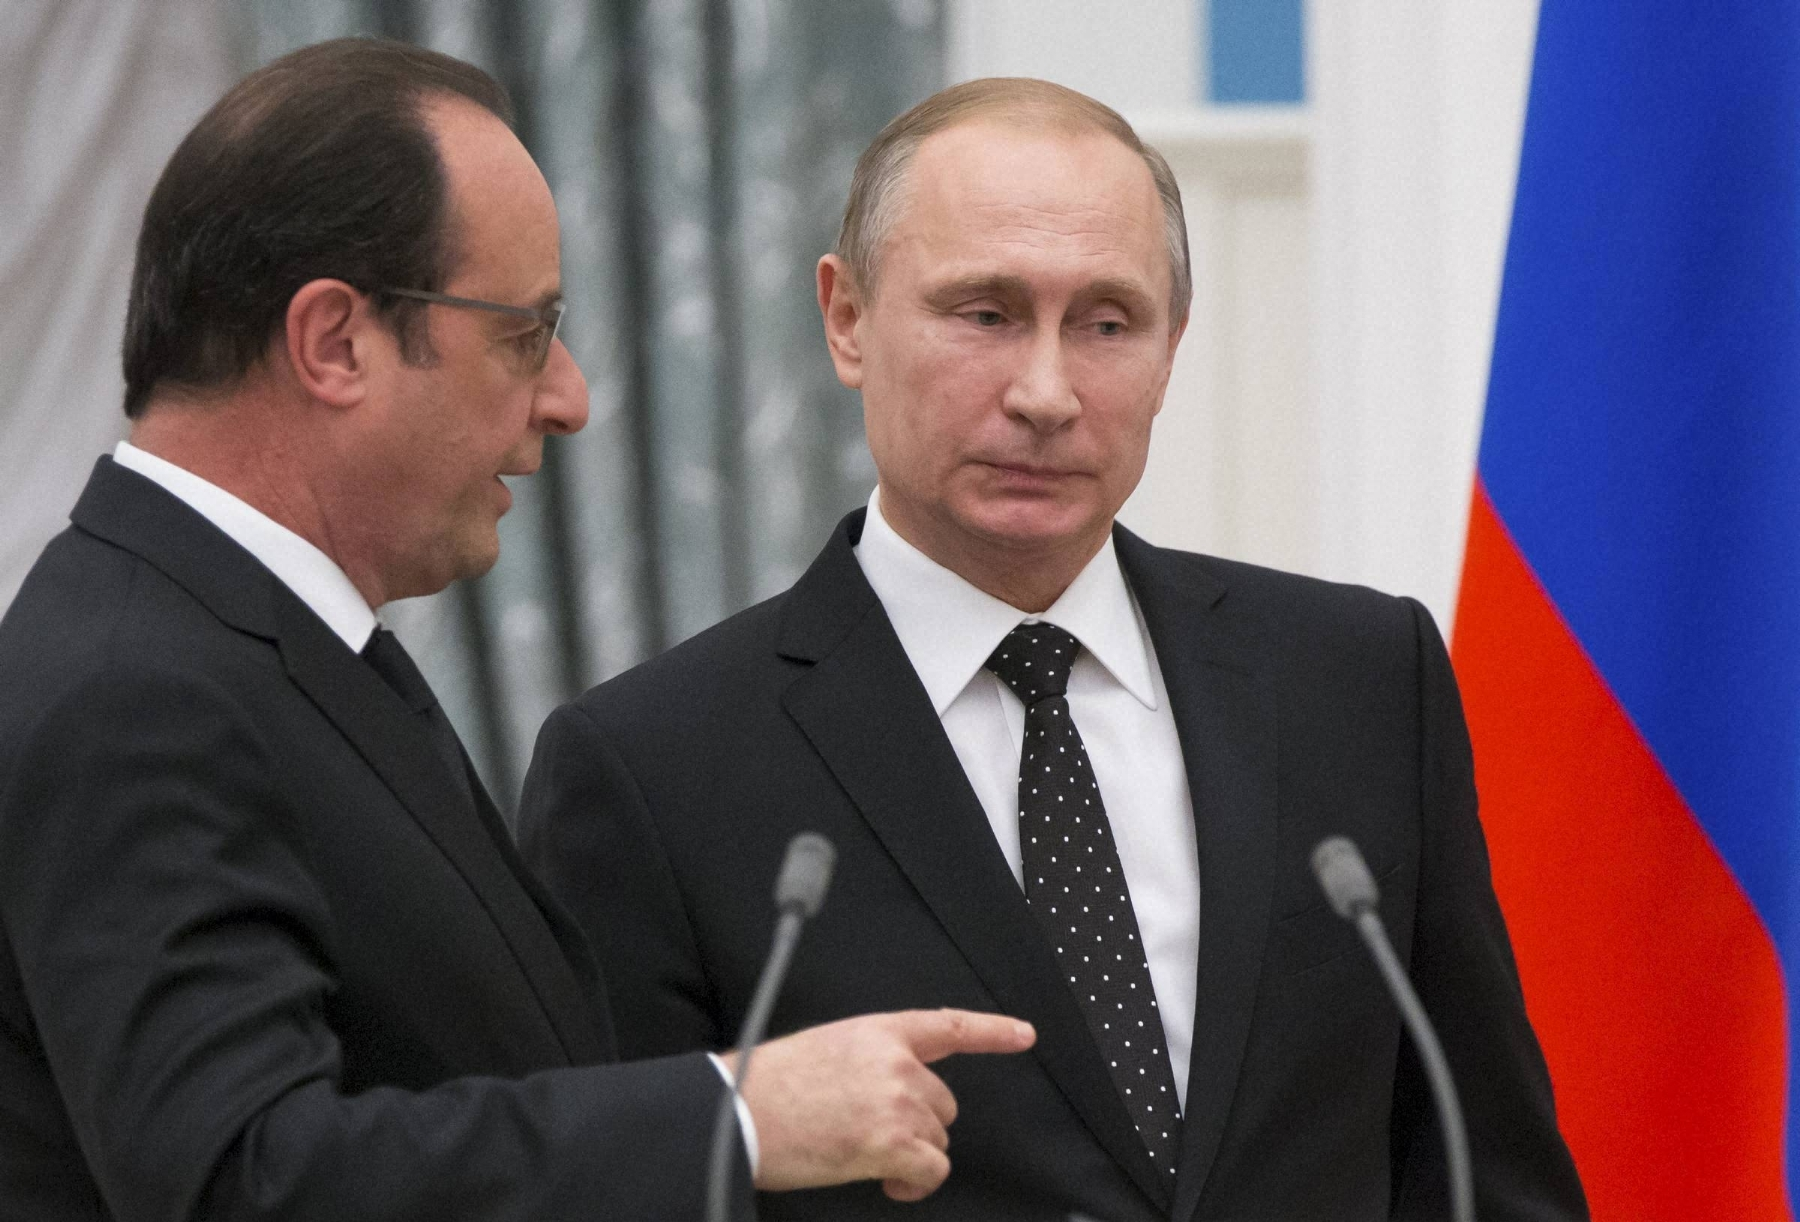 France, Russia to cooperate in fight against Islamic State